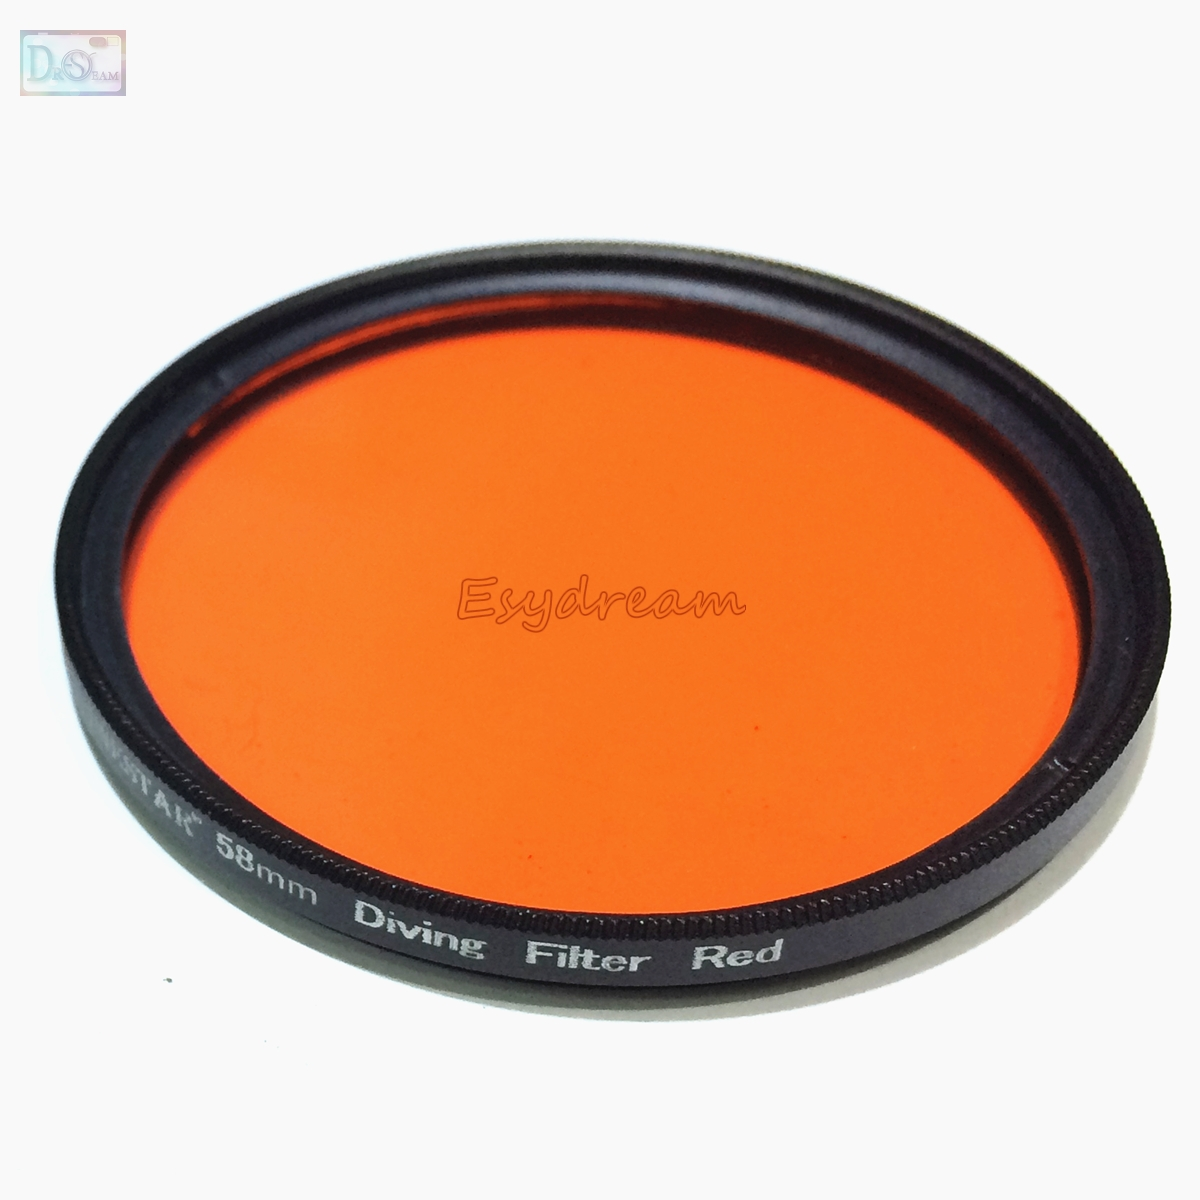 67 58 52 Waterproof Red Filter for Diving Underwater Photography Camera Housing Gopro Xiaomi Yi Color